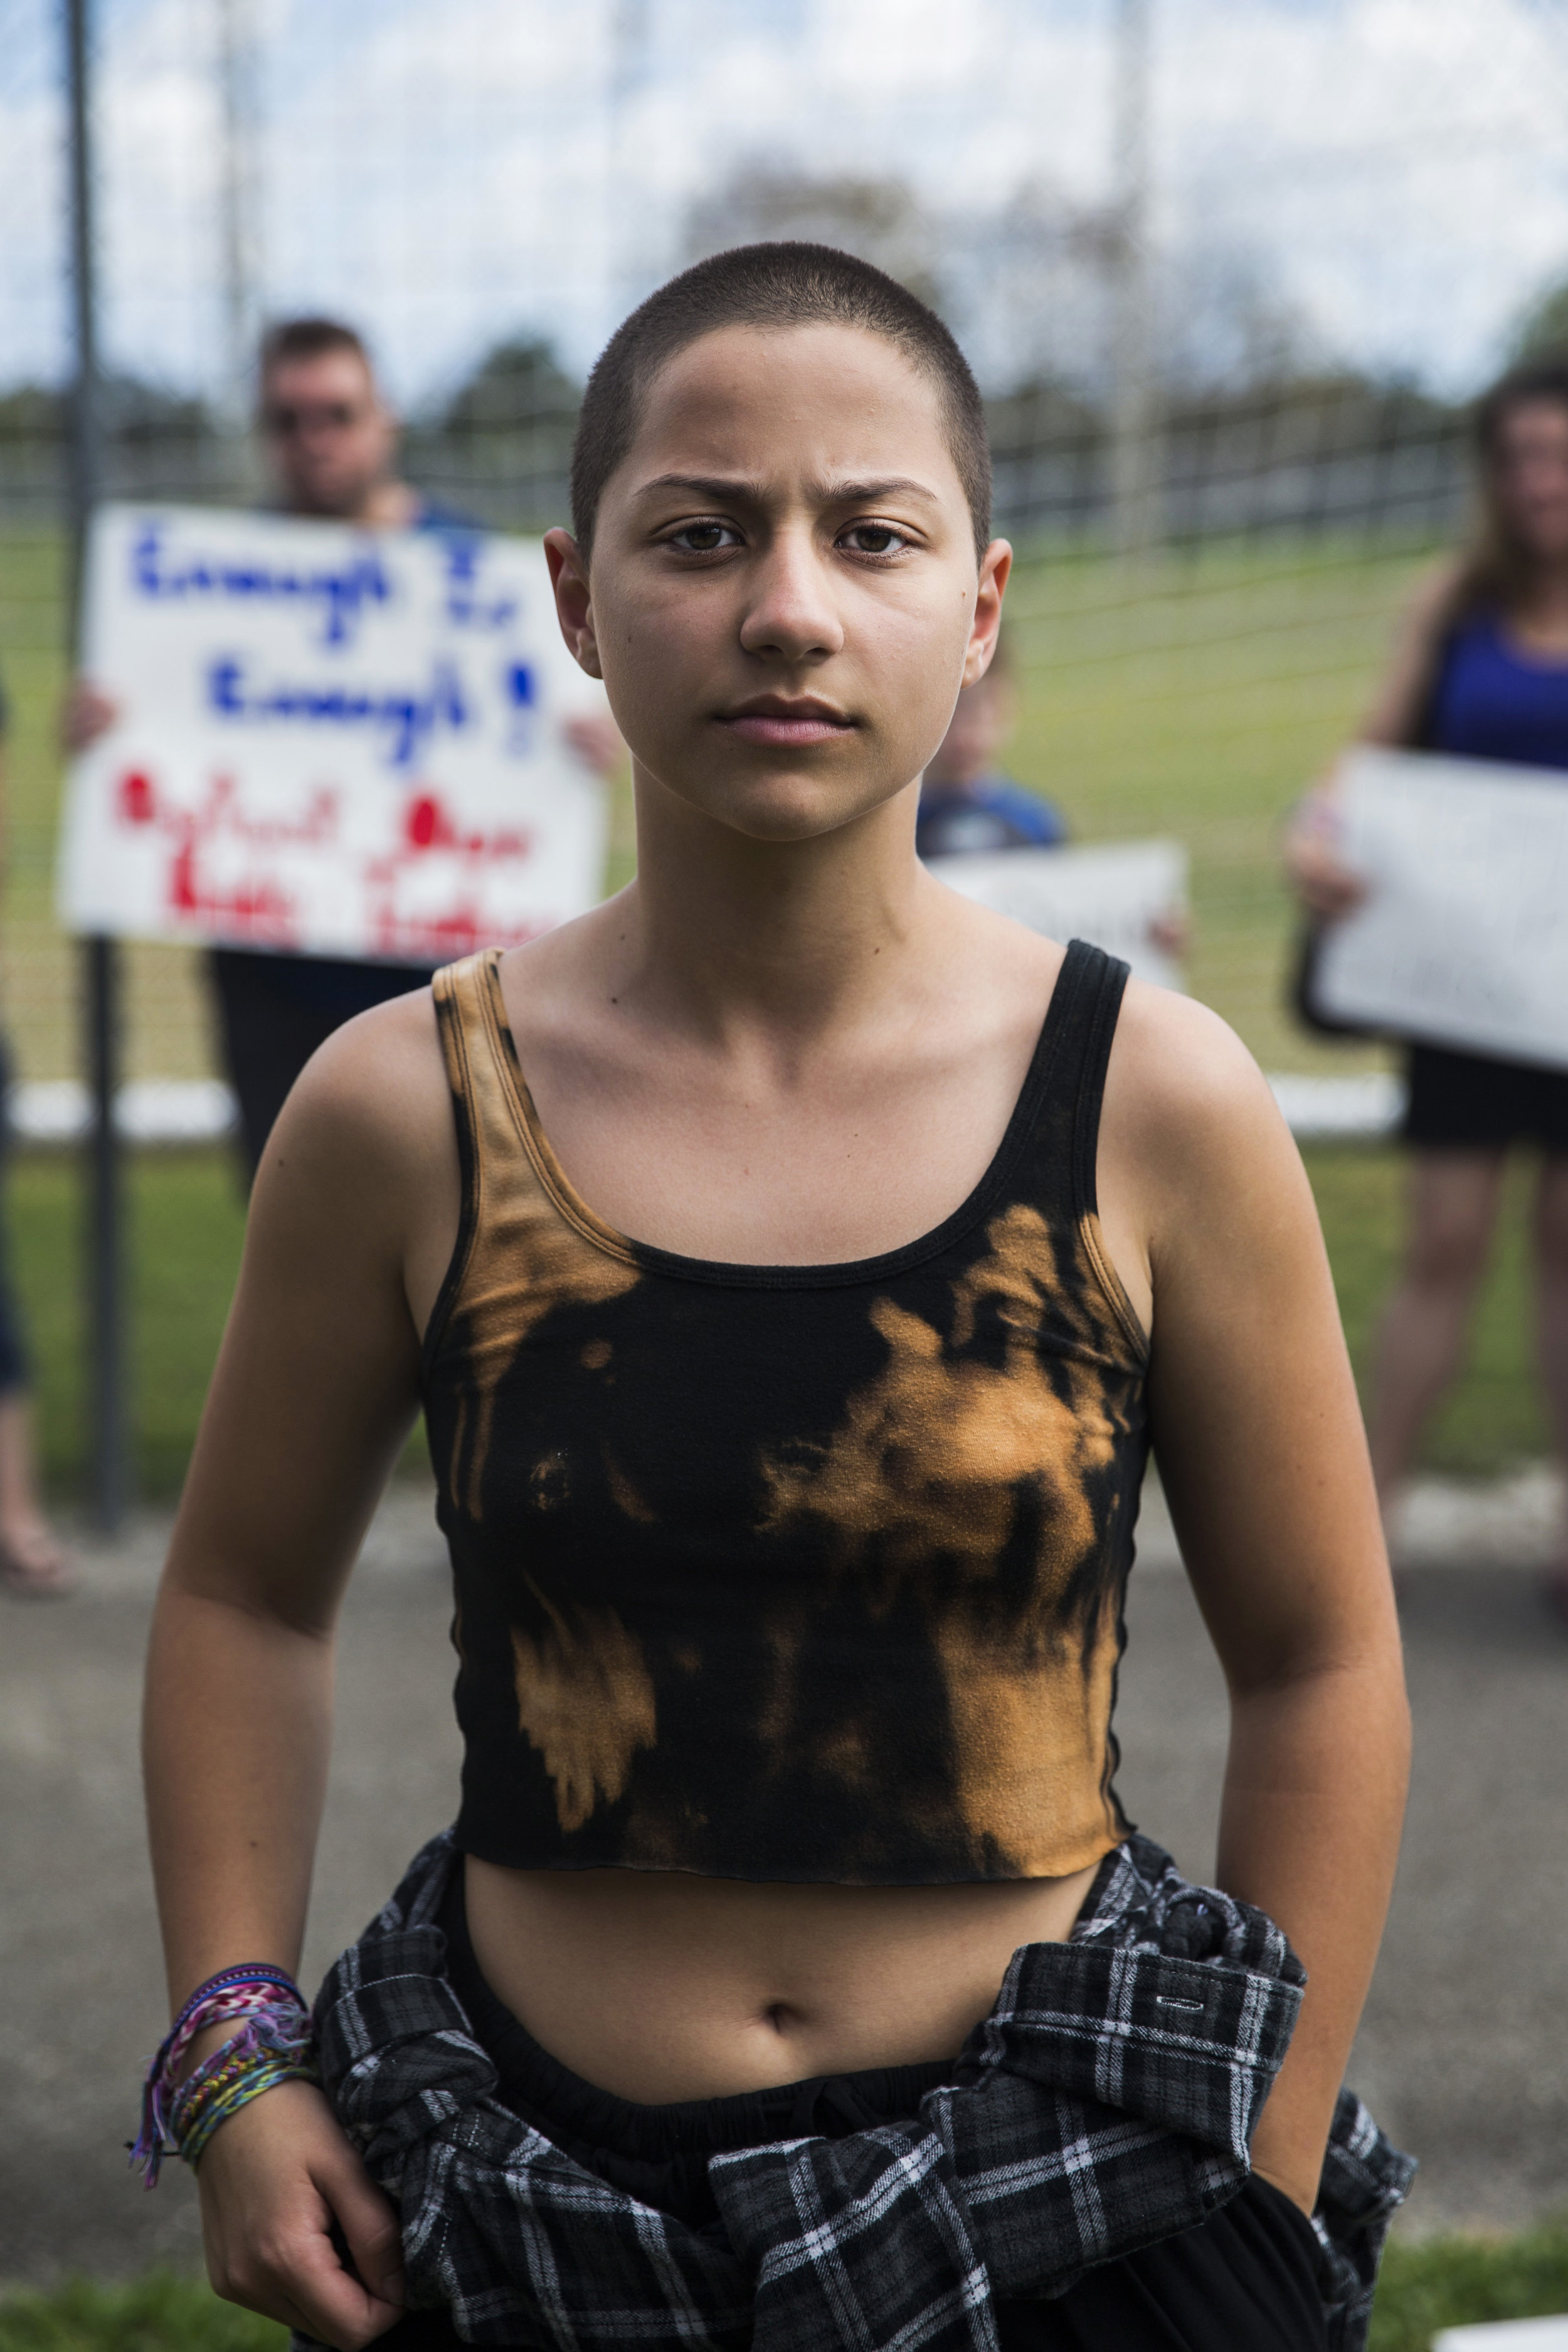 "Emma González, 18, a senior at Marjory Stoneman Douglas High School, at North Community Park on Sunday, Feb. 18, 2018. González became a viral sensation after videos of her impassioned speech at an anti-gun rally in Fort Lauderdale flooded social media. Now, she is helping to lead the #NeverAgain movement with her fellow classmates. ""It's funny. I didn't even have a Twitter account before two hours ago and it was trending on Twitter all day yesterday,"" González said. ""I have become somewhat of a spokesperson for this, but we're all saying the same thing. That's why we teamed up together like this because we know each other, we love each other very much and we all agree on the same stuff. We're happy that all of us are still alive and we're gonna make sure it stays that way for the people in our neighboring communities. For our neighbors, our cousins, this generation, not the next generation because the next generation will never have to worry about this because of us."""